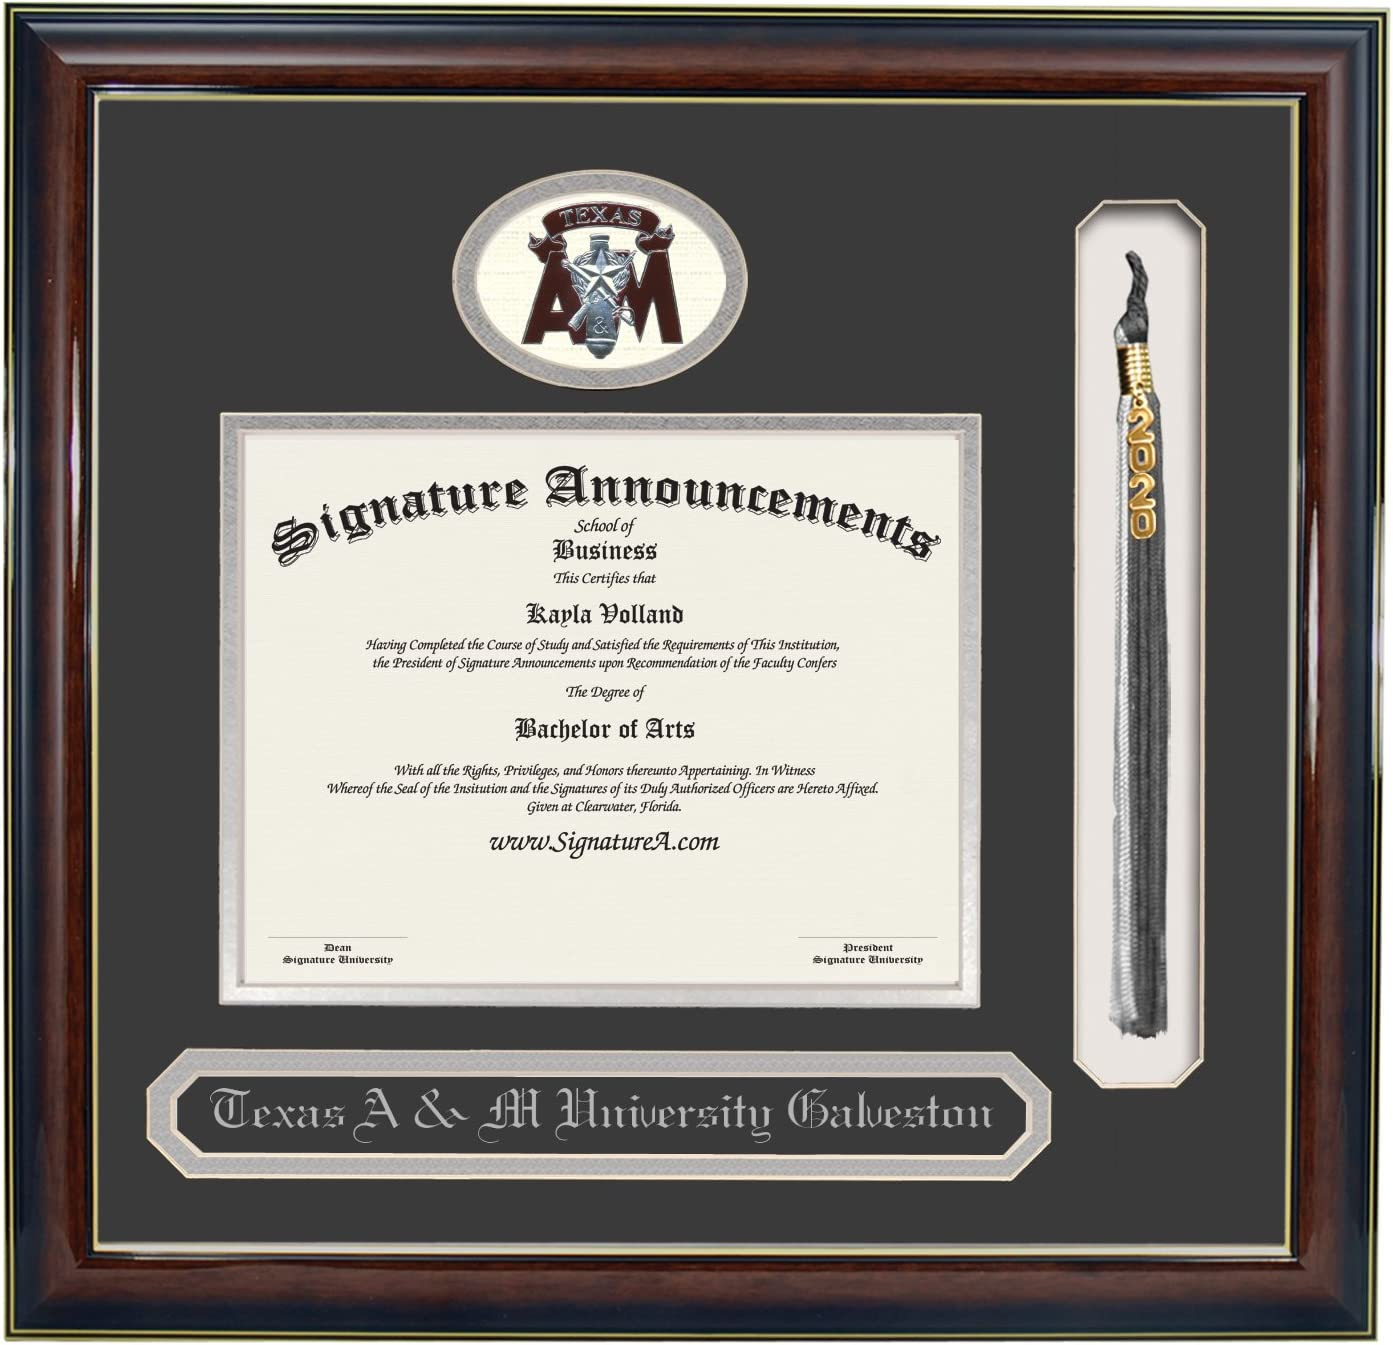 20 x 20 Signature Announcements Texas-A/&M-University-at-Galveston Undergraduate Doctorate Sculpted Foil Seal Name /& Tassel Diploma Frame Gloss Mahogany w//Gold Accent